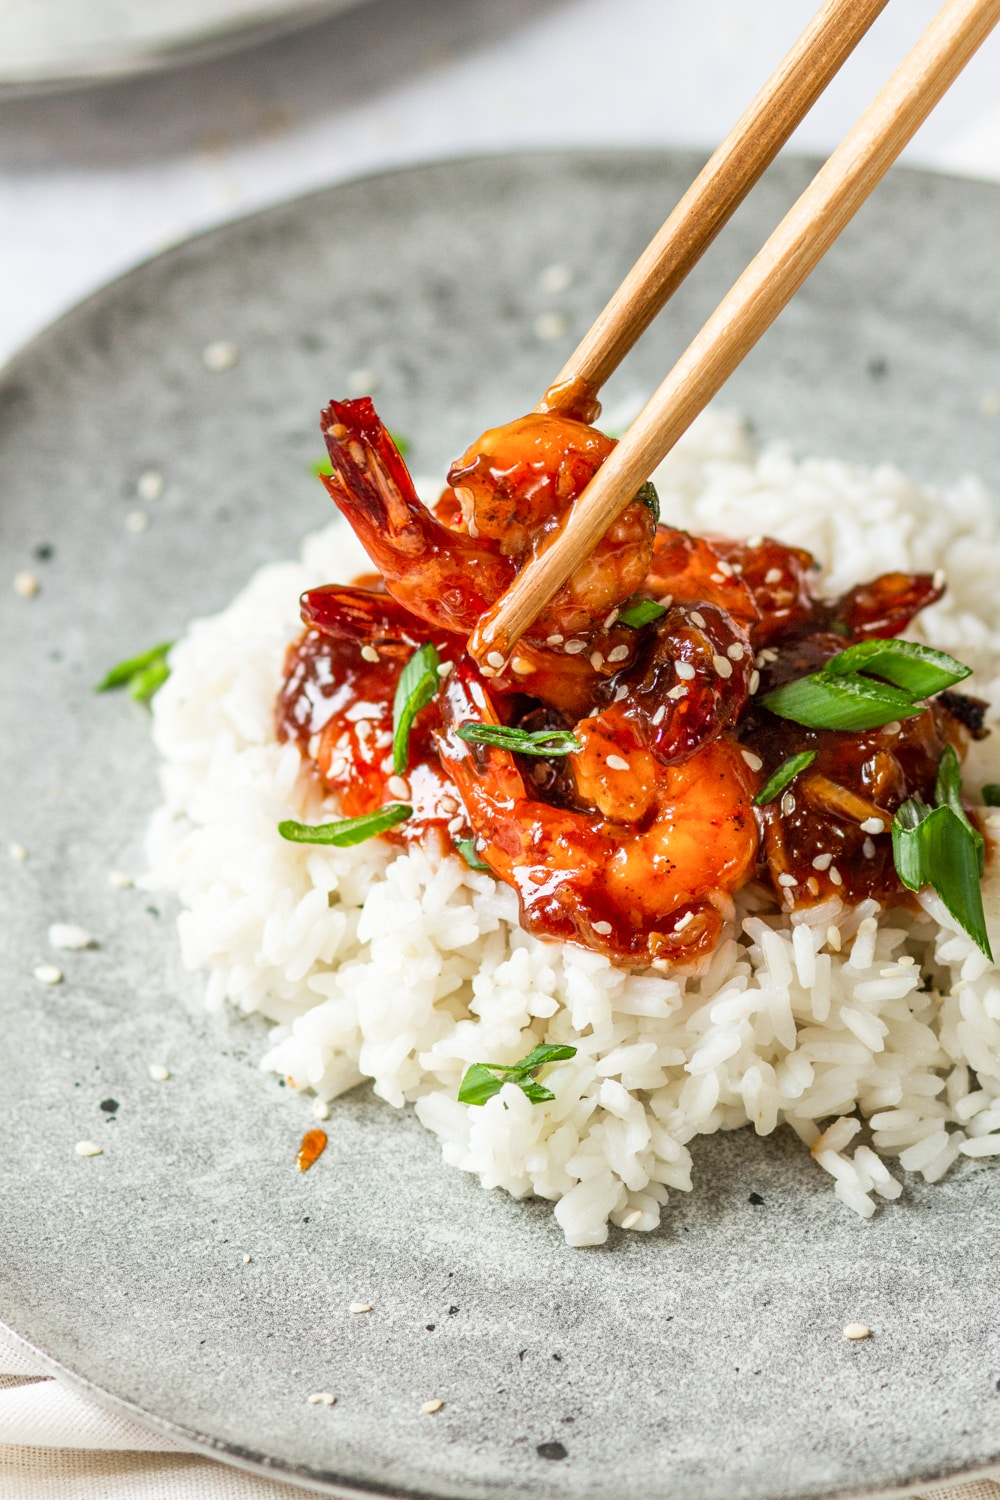 A few pieces of sweet and sour shrimp on a bed of white rice on a grey plate. A pair of chopsticks are grabbing a piece of shrimp from the pile of shrimp. Sesame seeds and sliced green onion are on top of the shrimp.